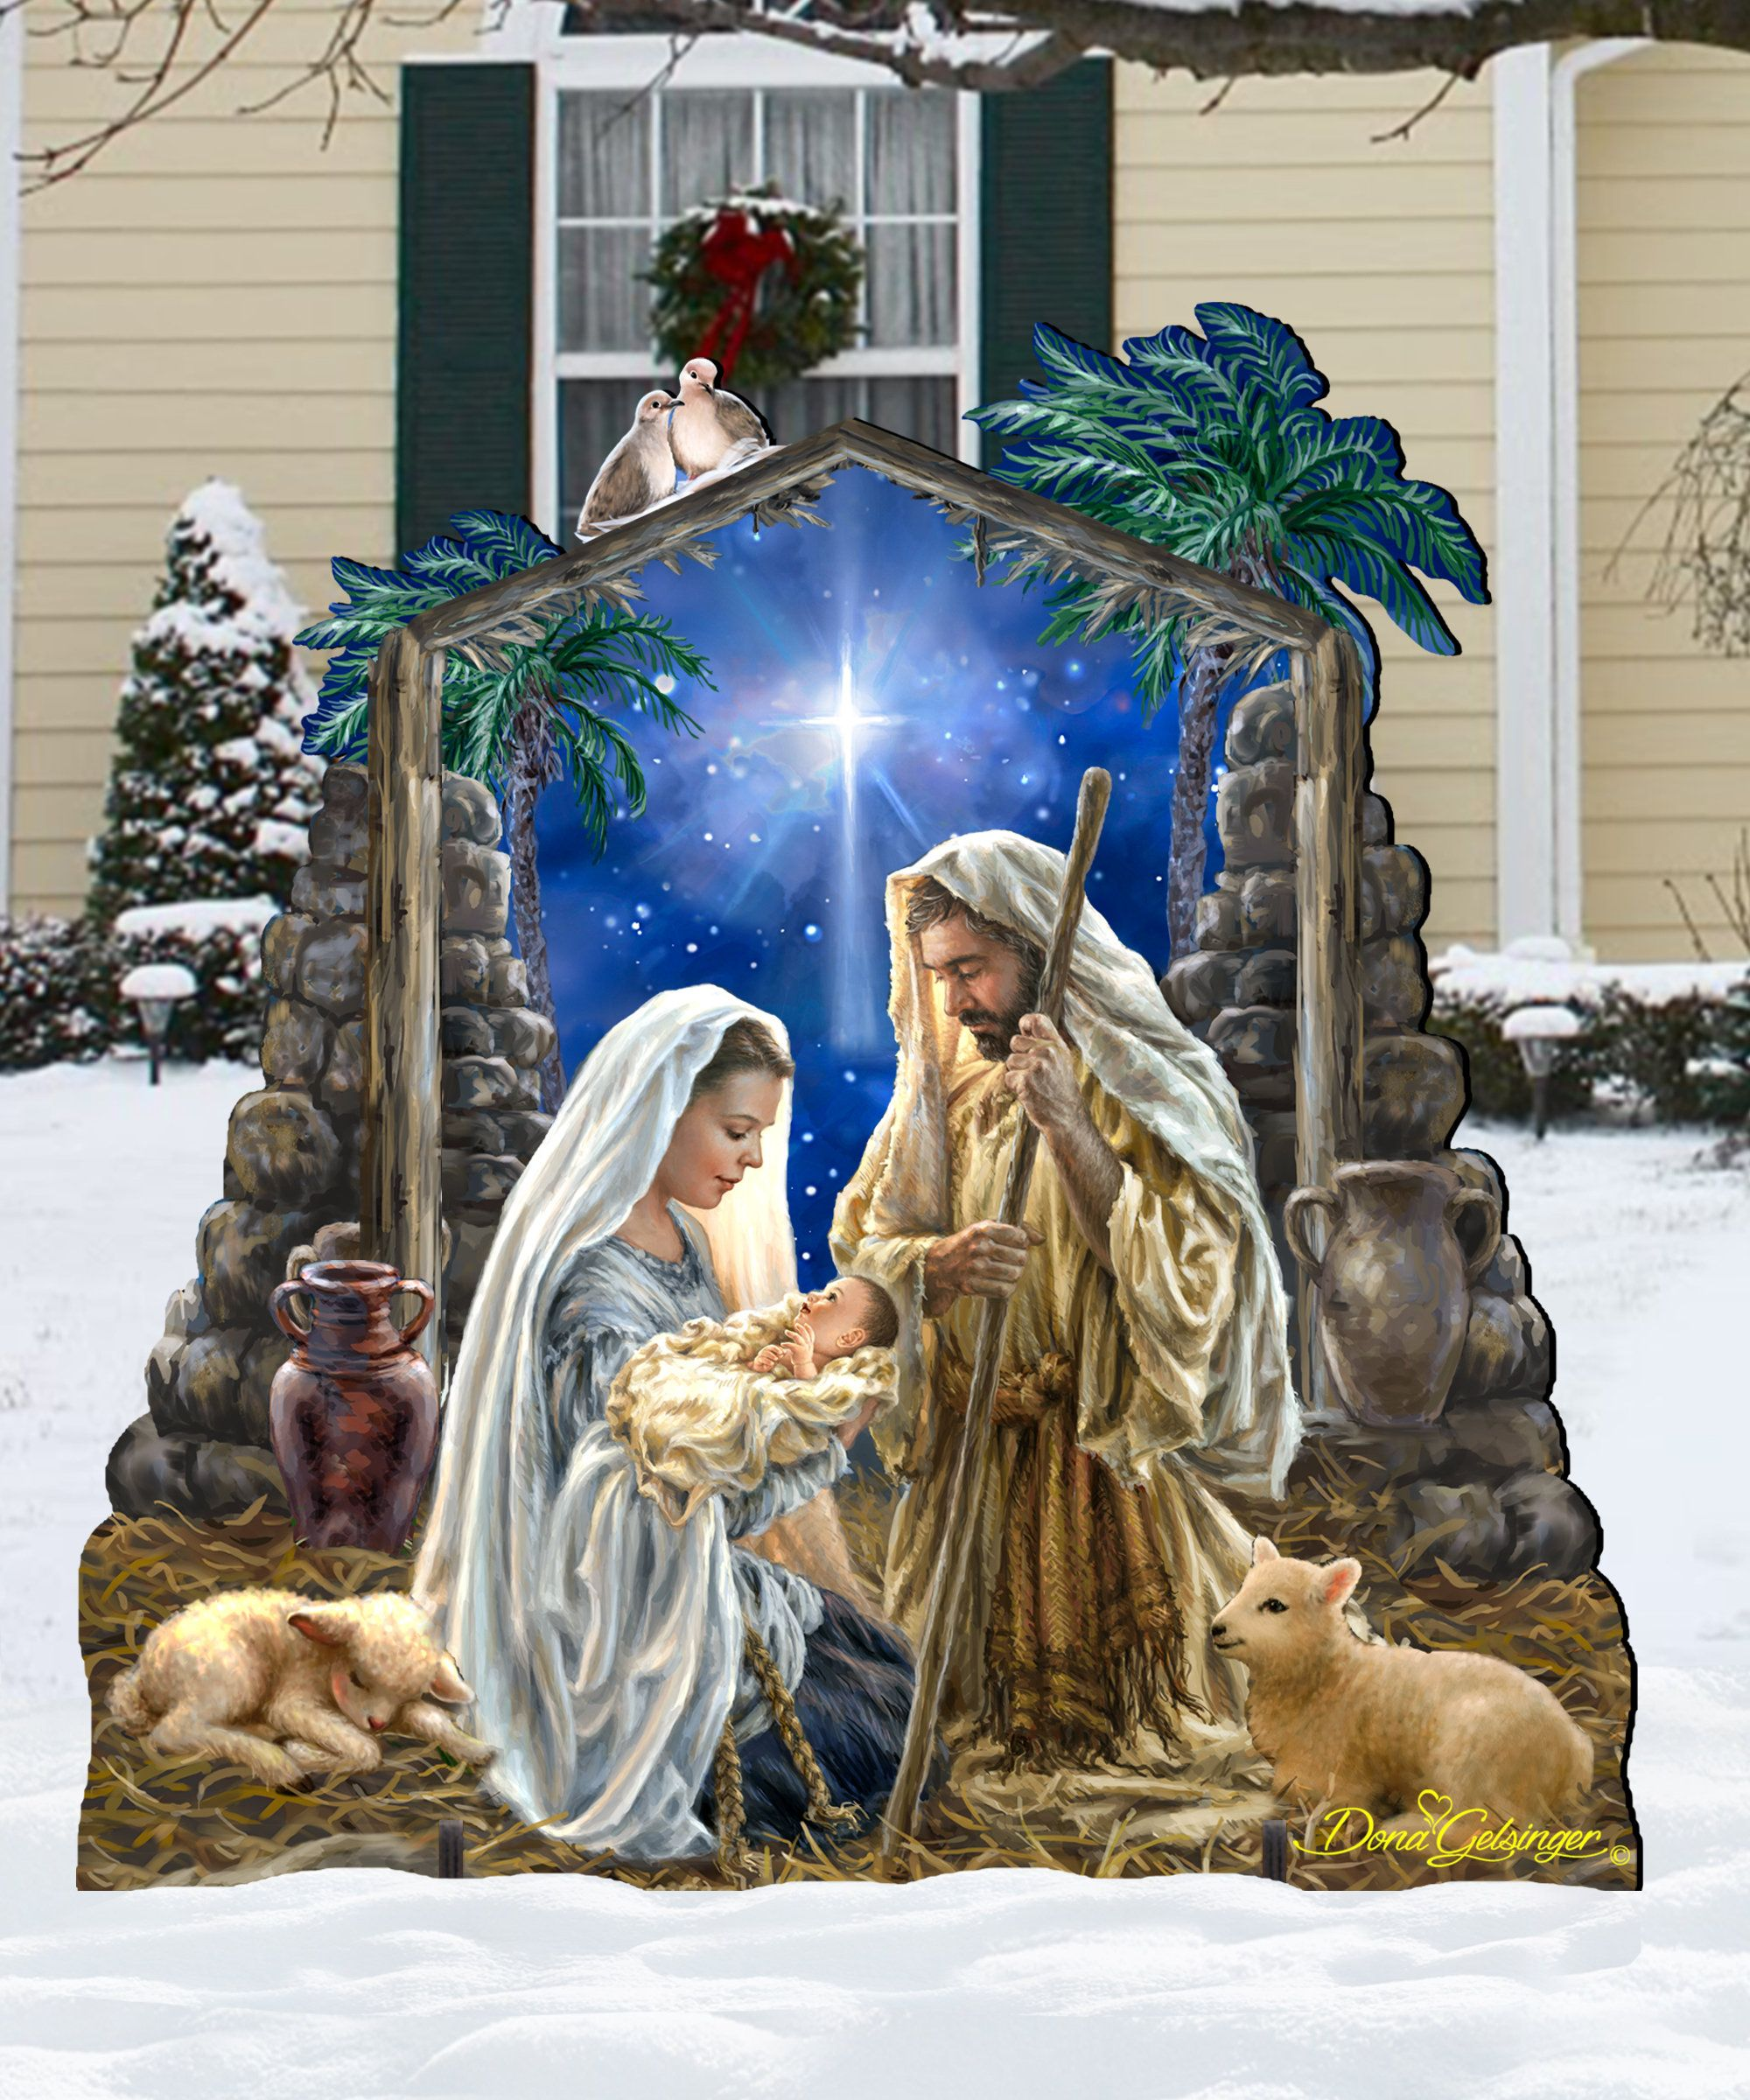 Outdoor Nativity Set Wooden Free Standing Christmas Decoration By Dona Gelsinger 8461010f 1722 Outdoor Nativity Sets Outdoor Nativity Outdoor Nativity Scene